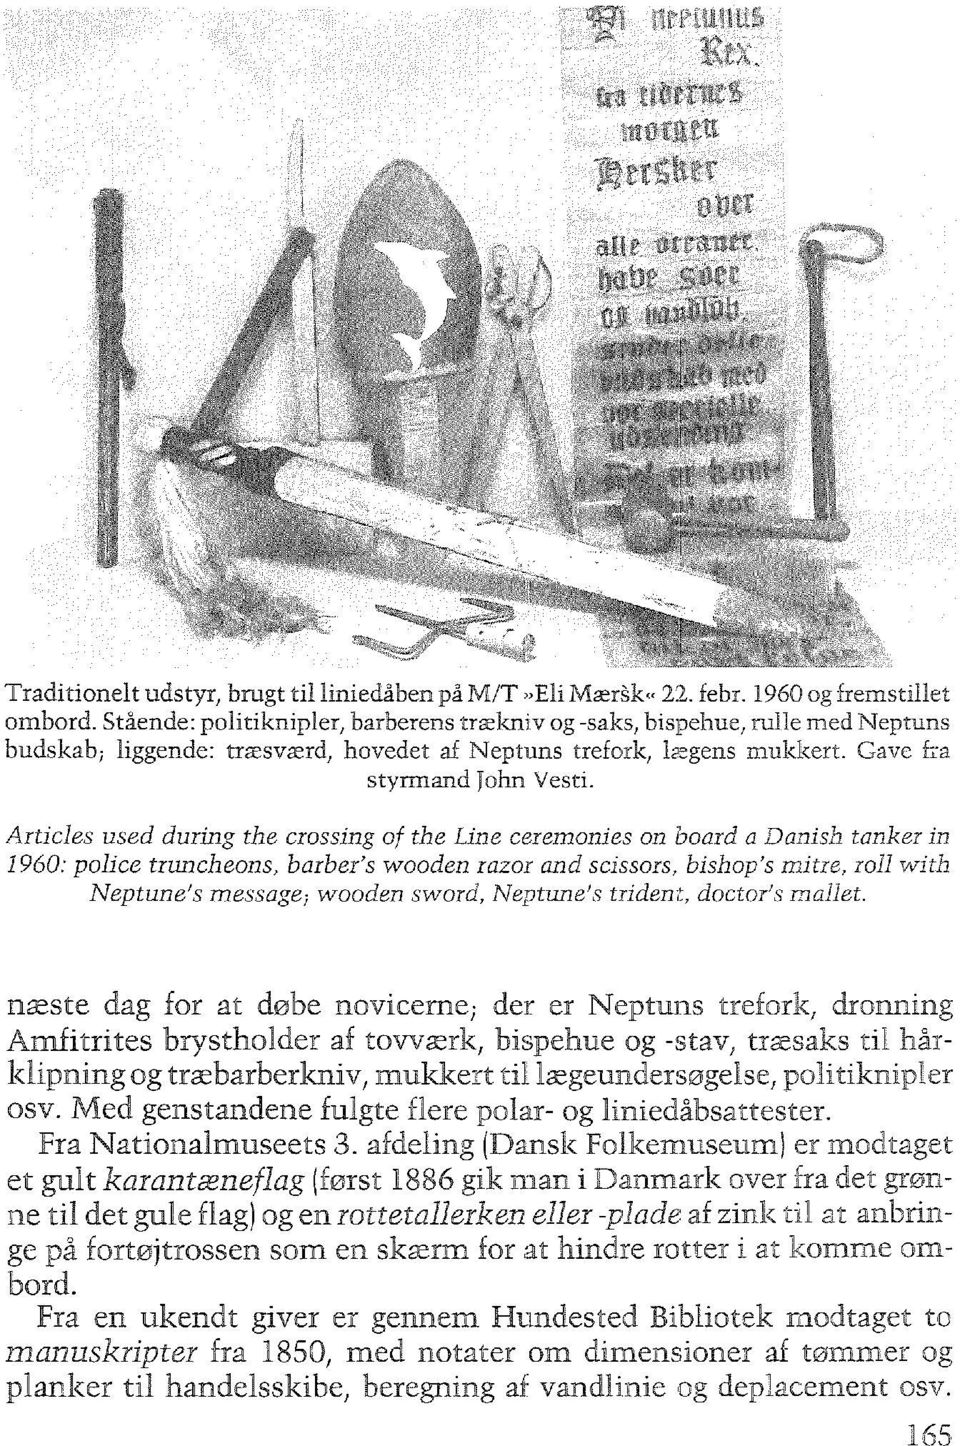 Articles used during the crossing of the Line ceremonies on board a Danish tanker in 1960: police truncheons, barber's wooden razor and scissors, bishop's mitre, roll with Neptune's message-, wooden